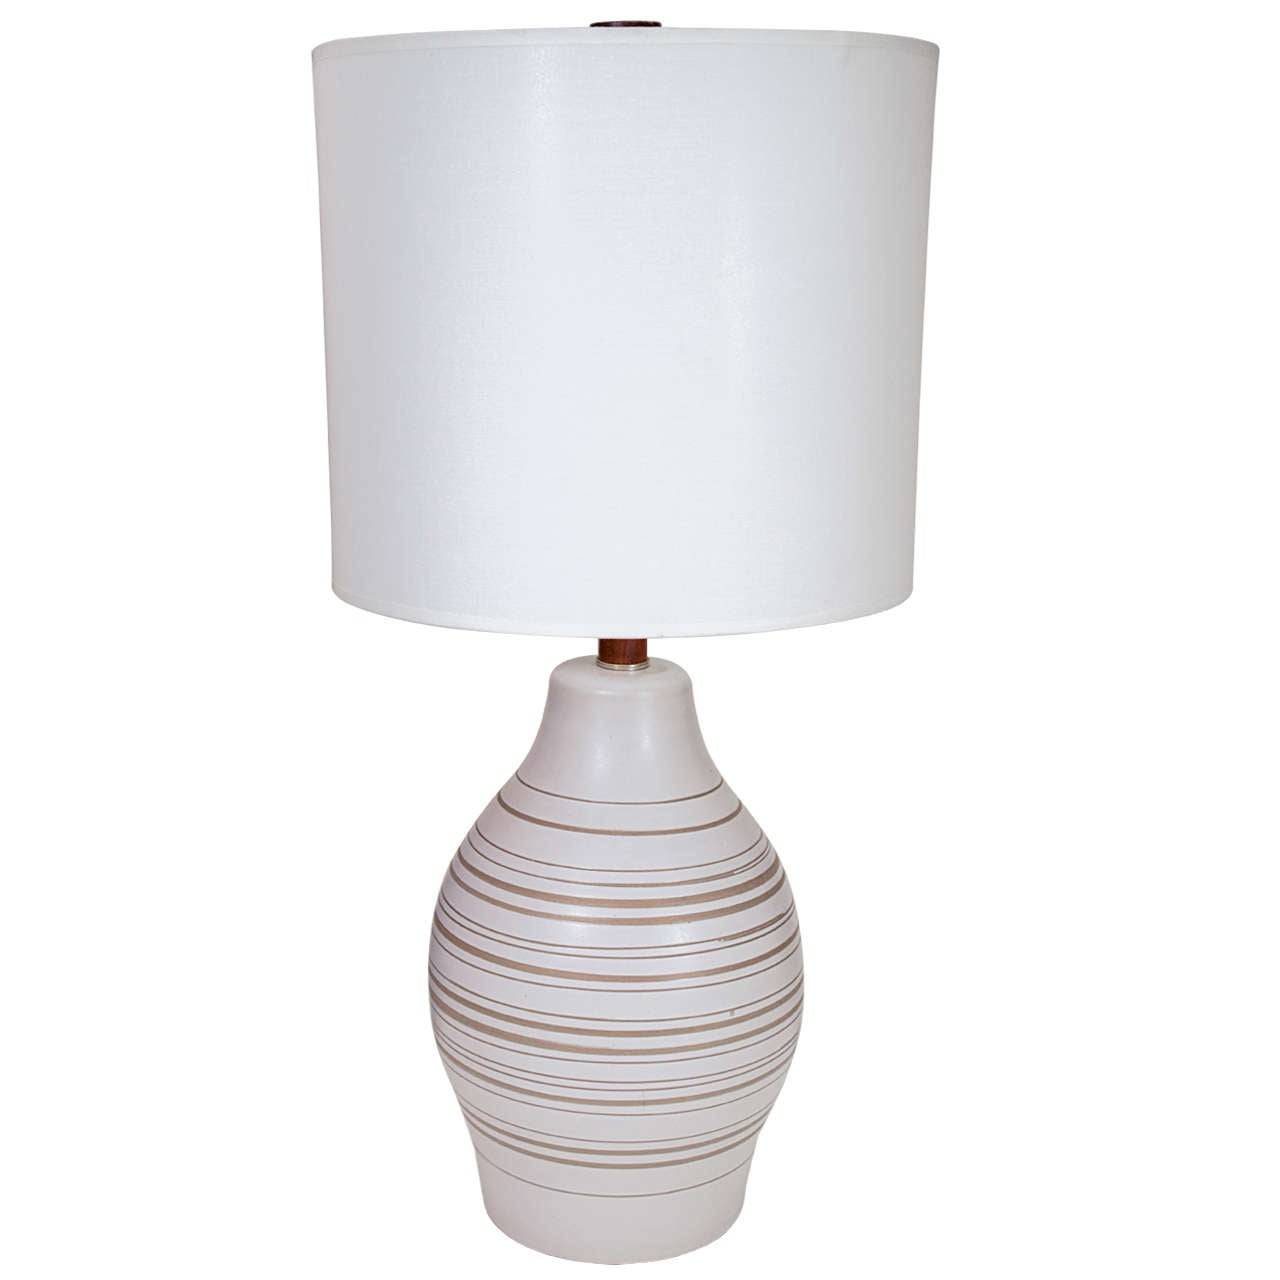 Gordon Martz Horizontal Striped Lamp